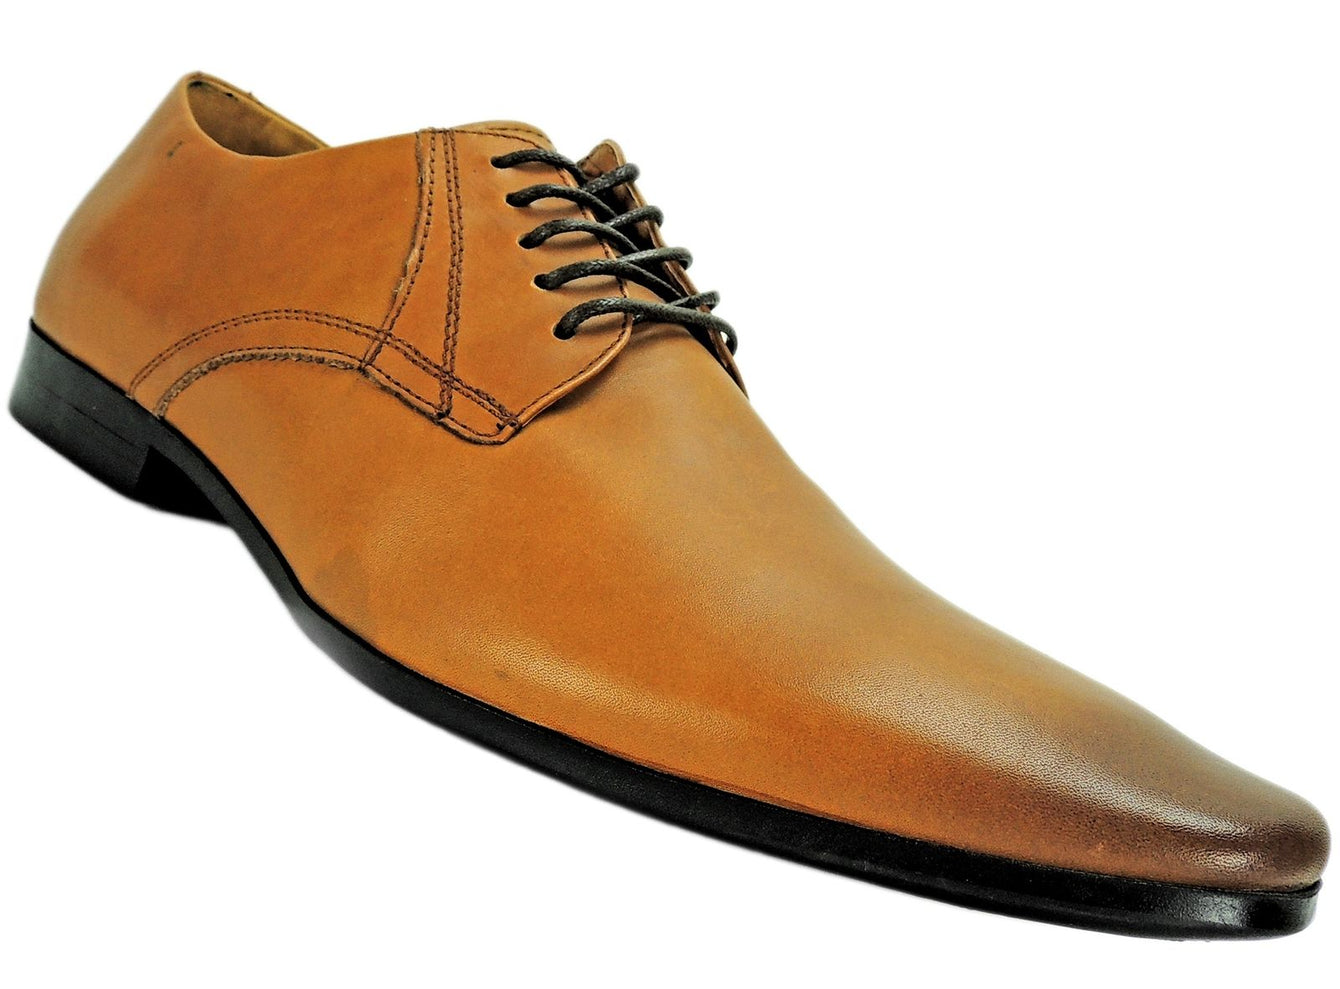 Bar III Jadontan Dress shoes  Kick-it Shoe Outlet  kick-it-shoe-outlet.myshopify.com Kick-it Shoe Outlet Shoes Cheap